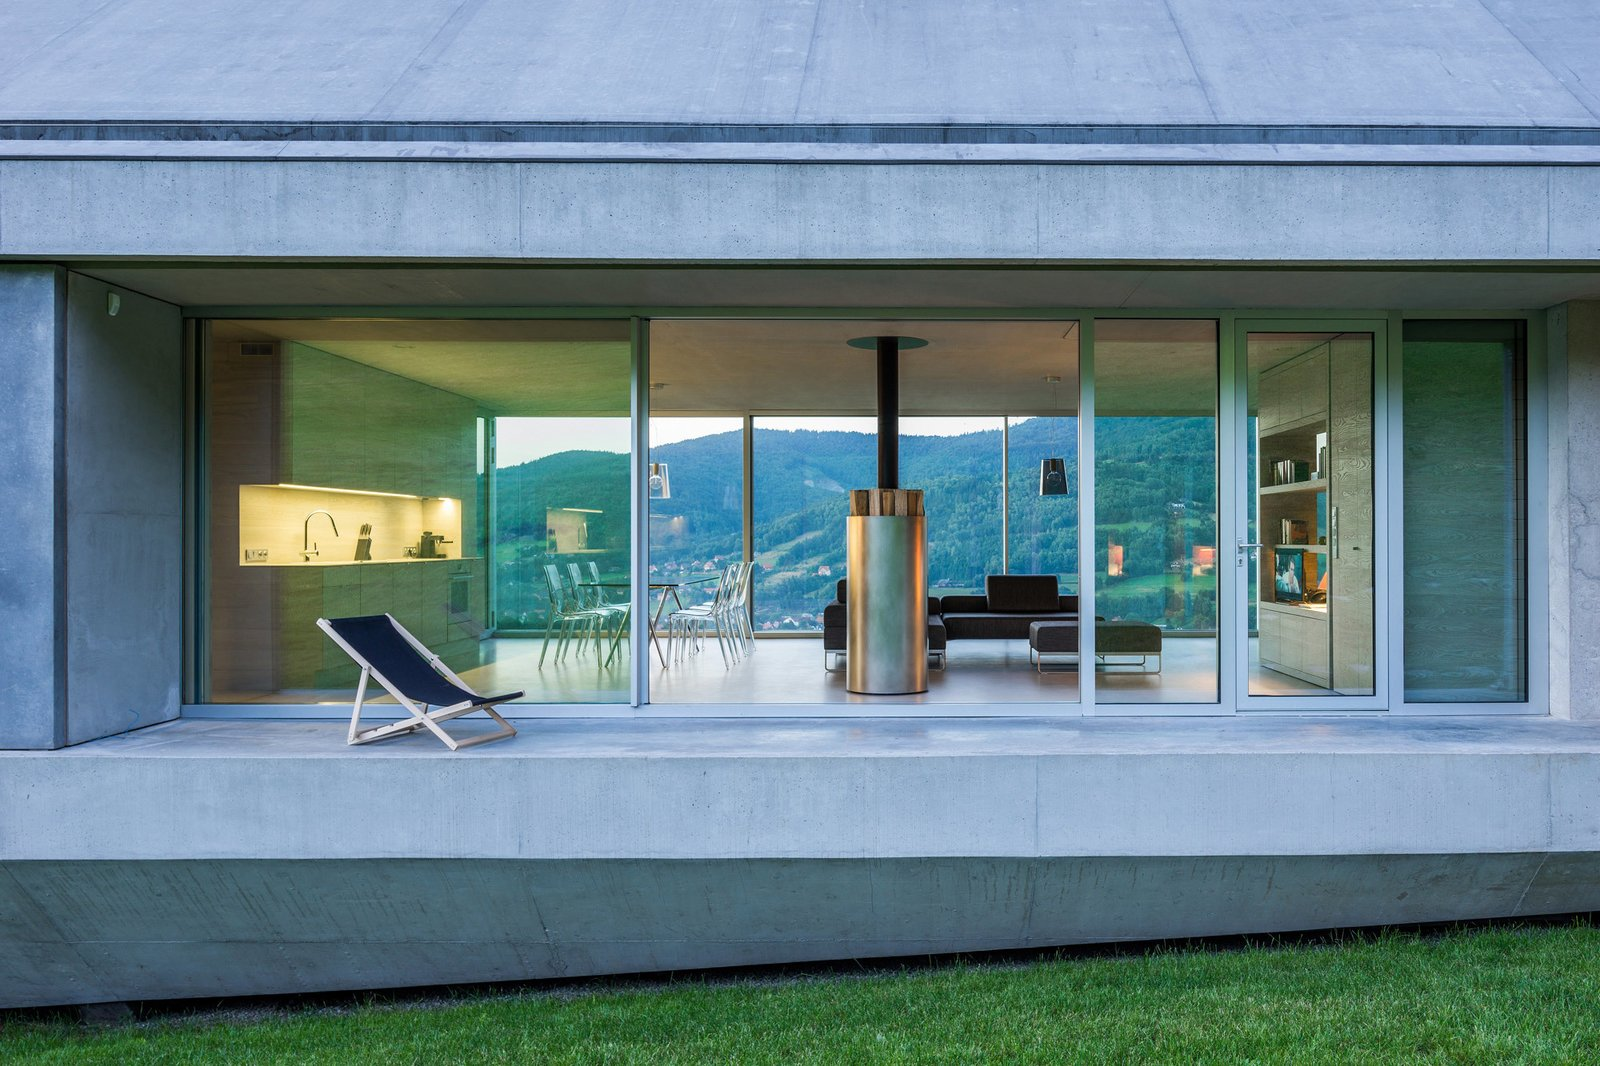 Photo 7 of 8 in A Striking Modern House Built In A Pastoral Landscape